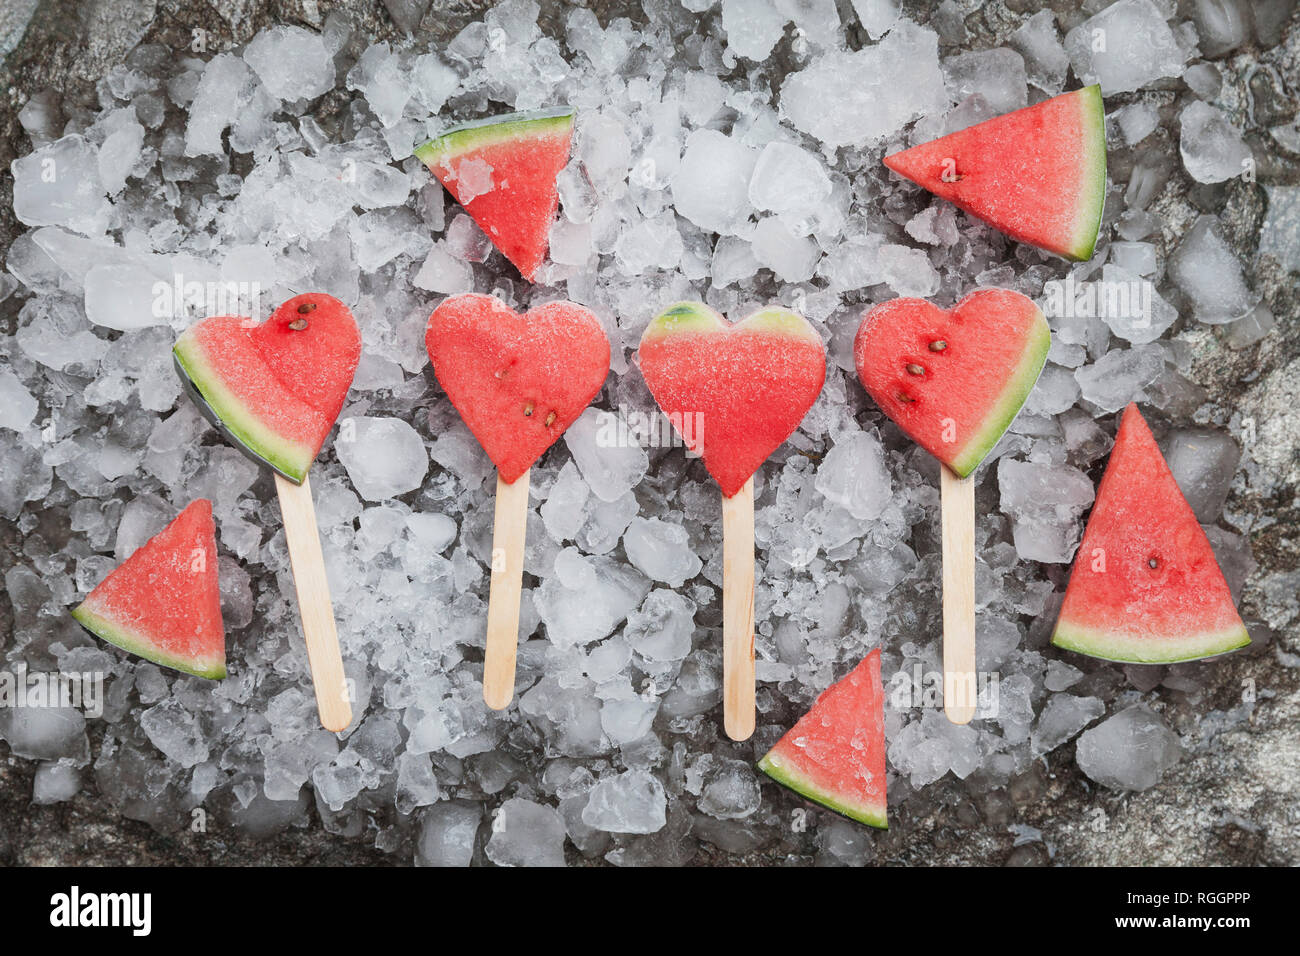 Watermelon heart ice lollies on crashed ice - Stock Image